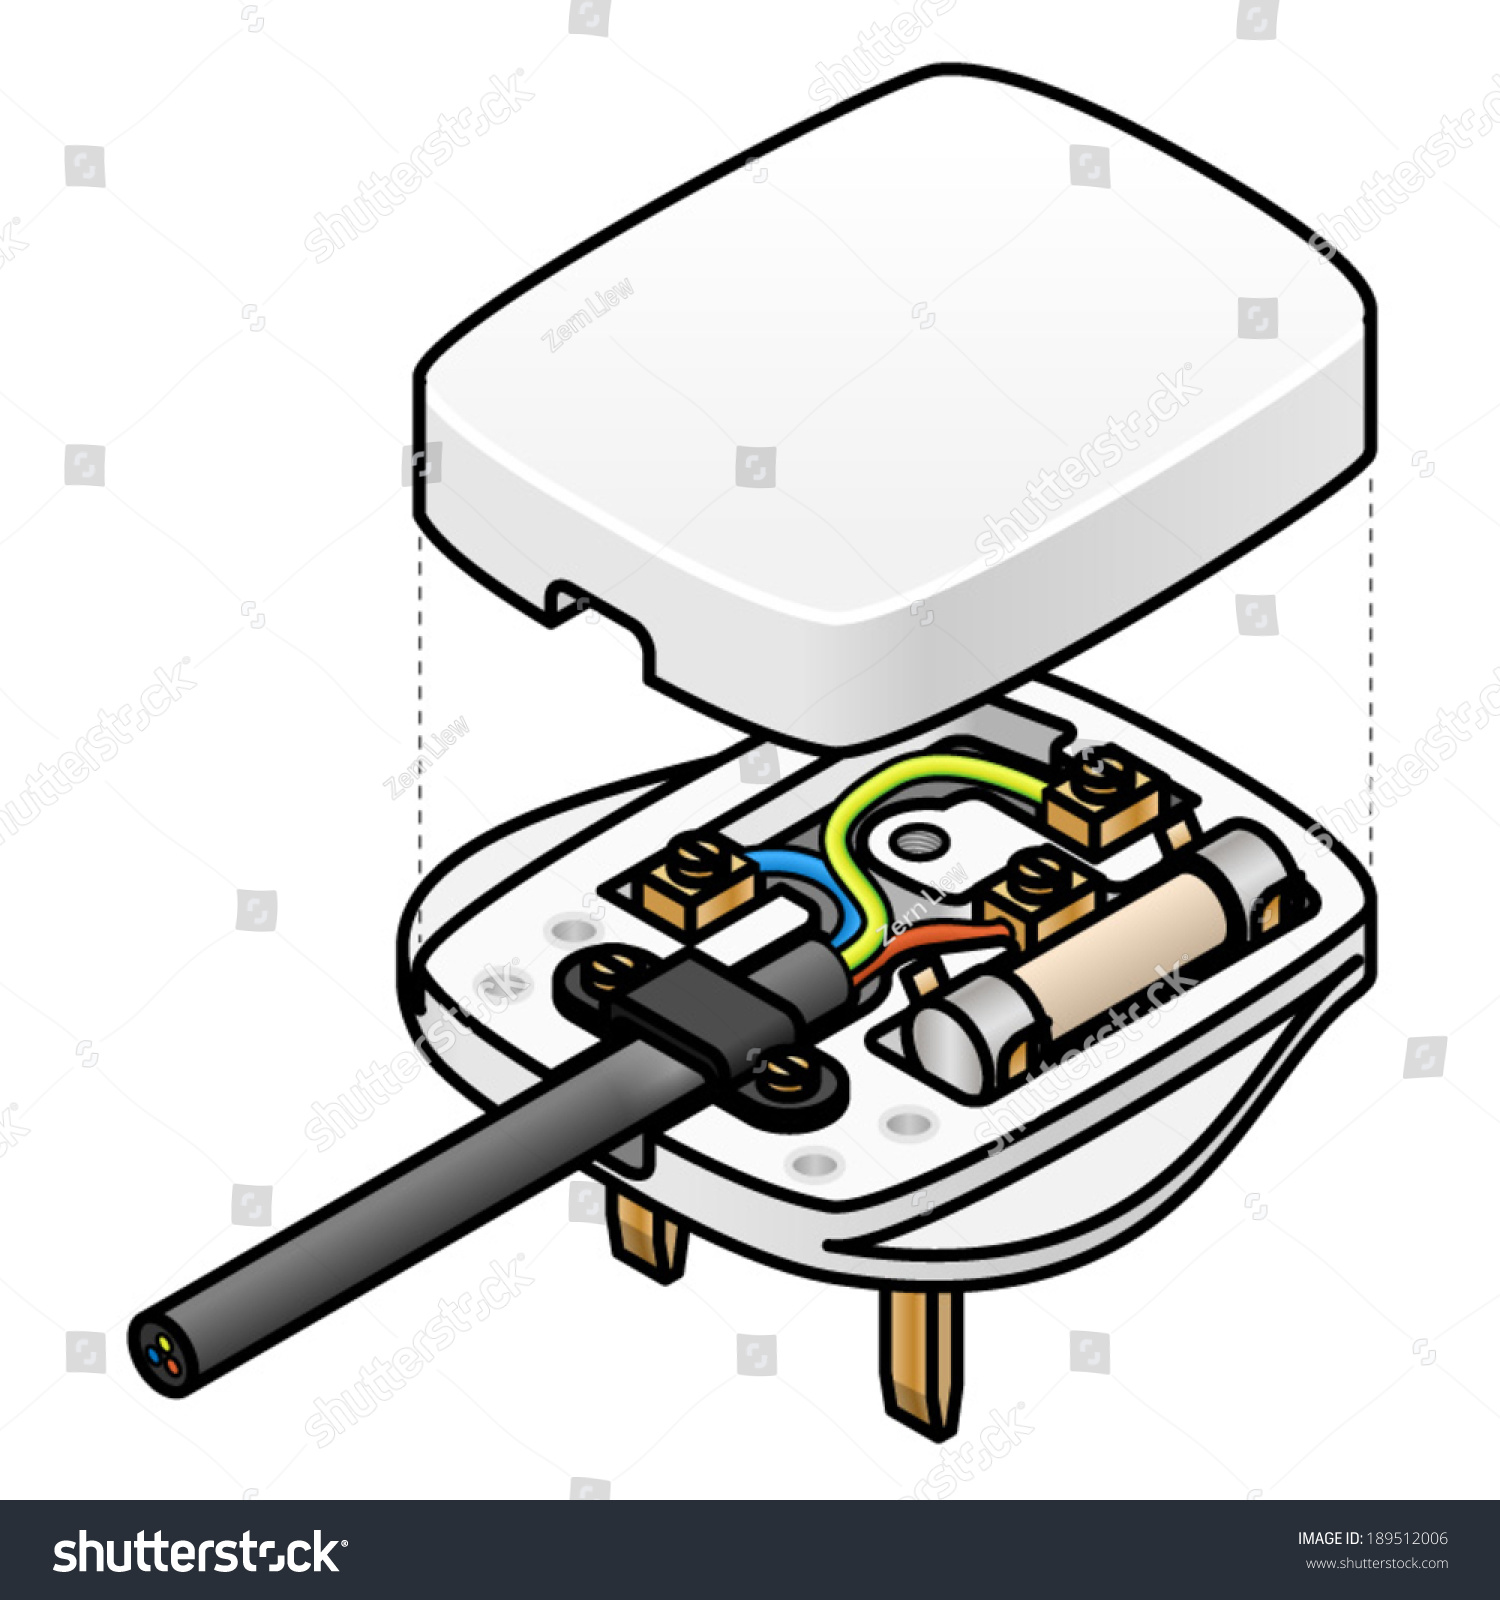 socket wiring diagram uk 24v thermostat an exploded of a mains ac plug showing the